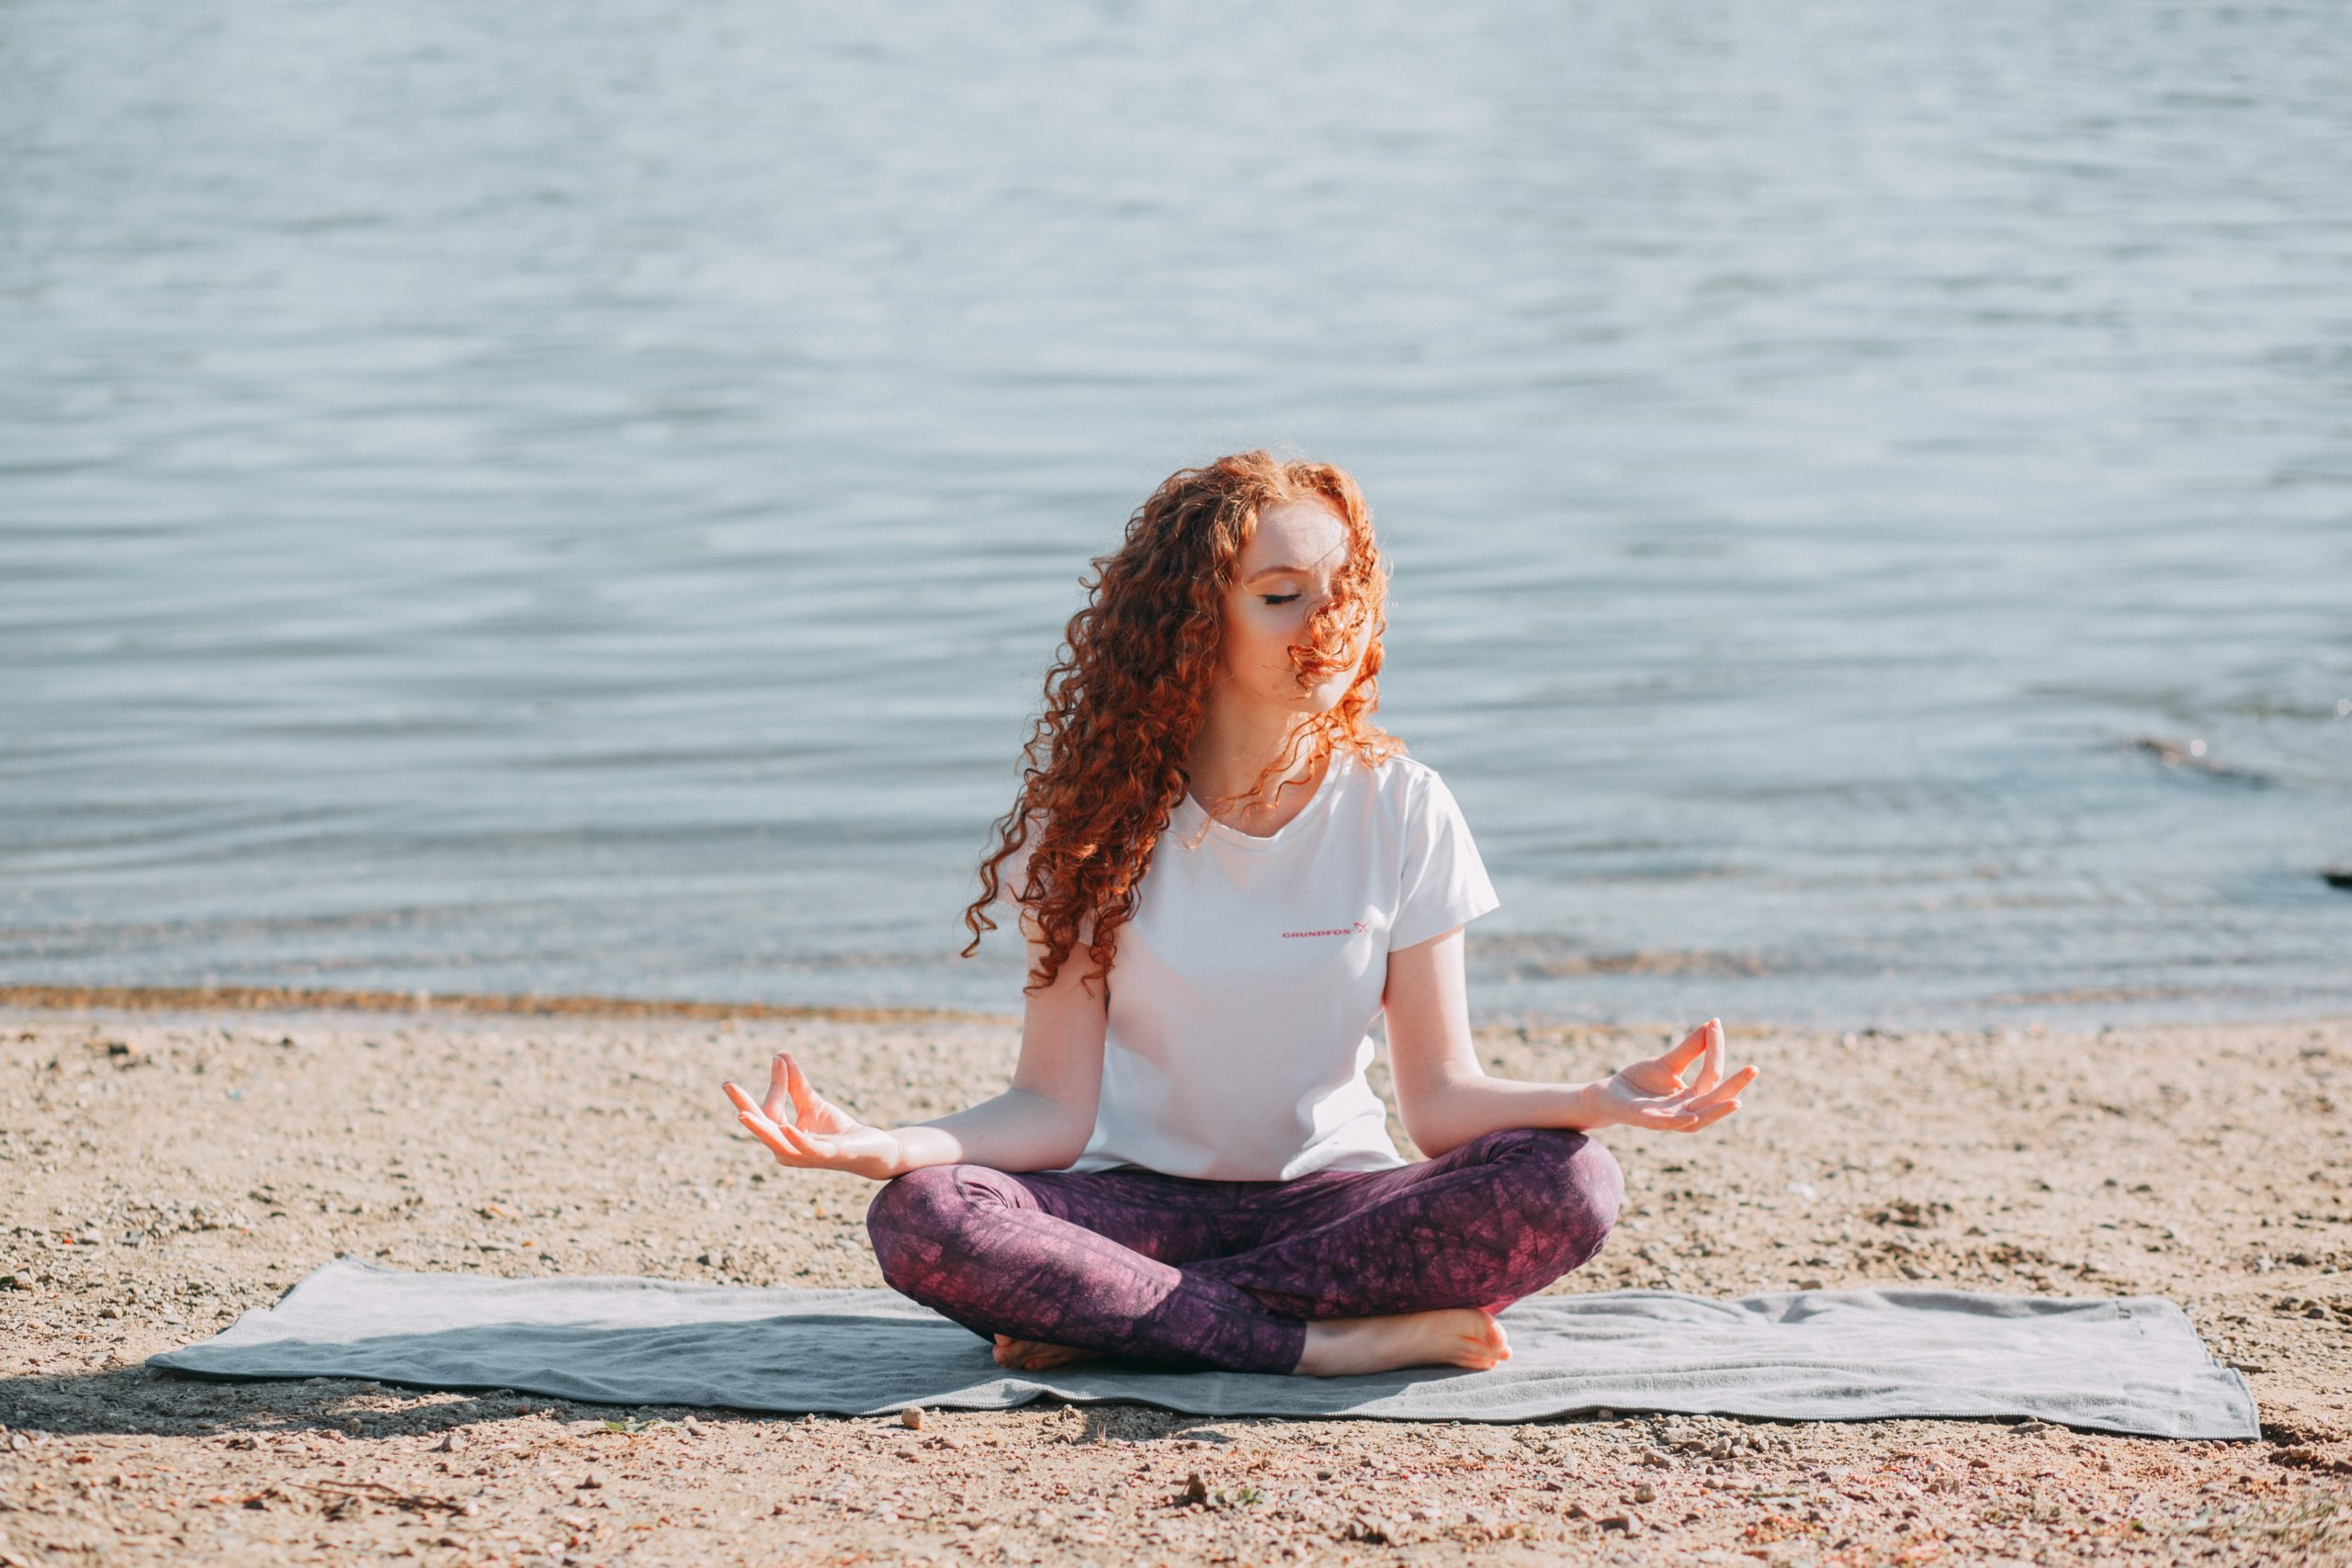 Wellbeing woman doing yoga exercise at the sea shore 3759660 scaled